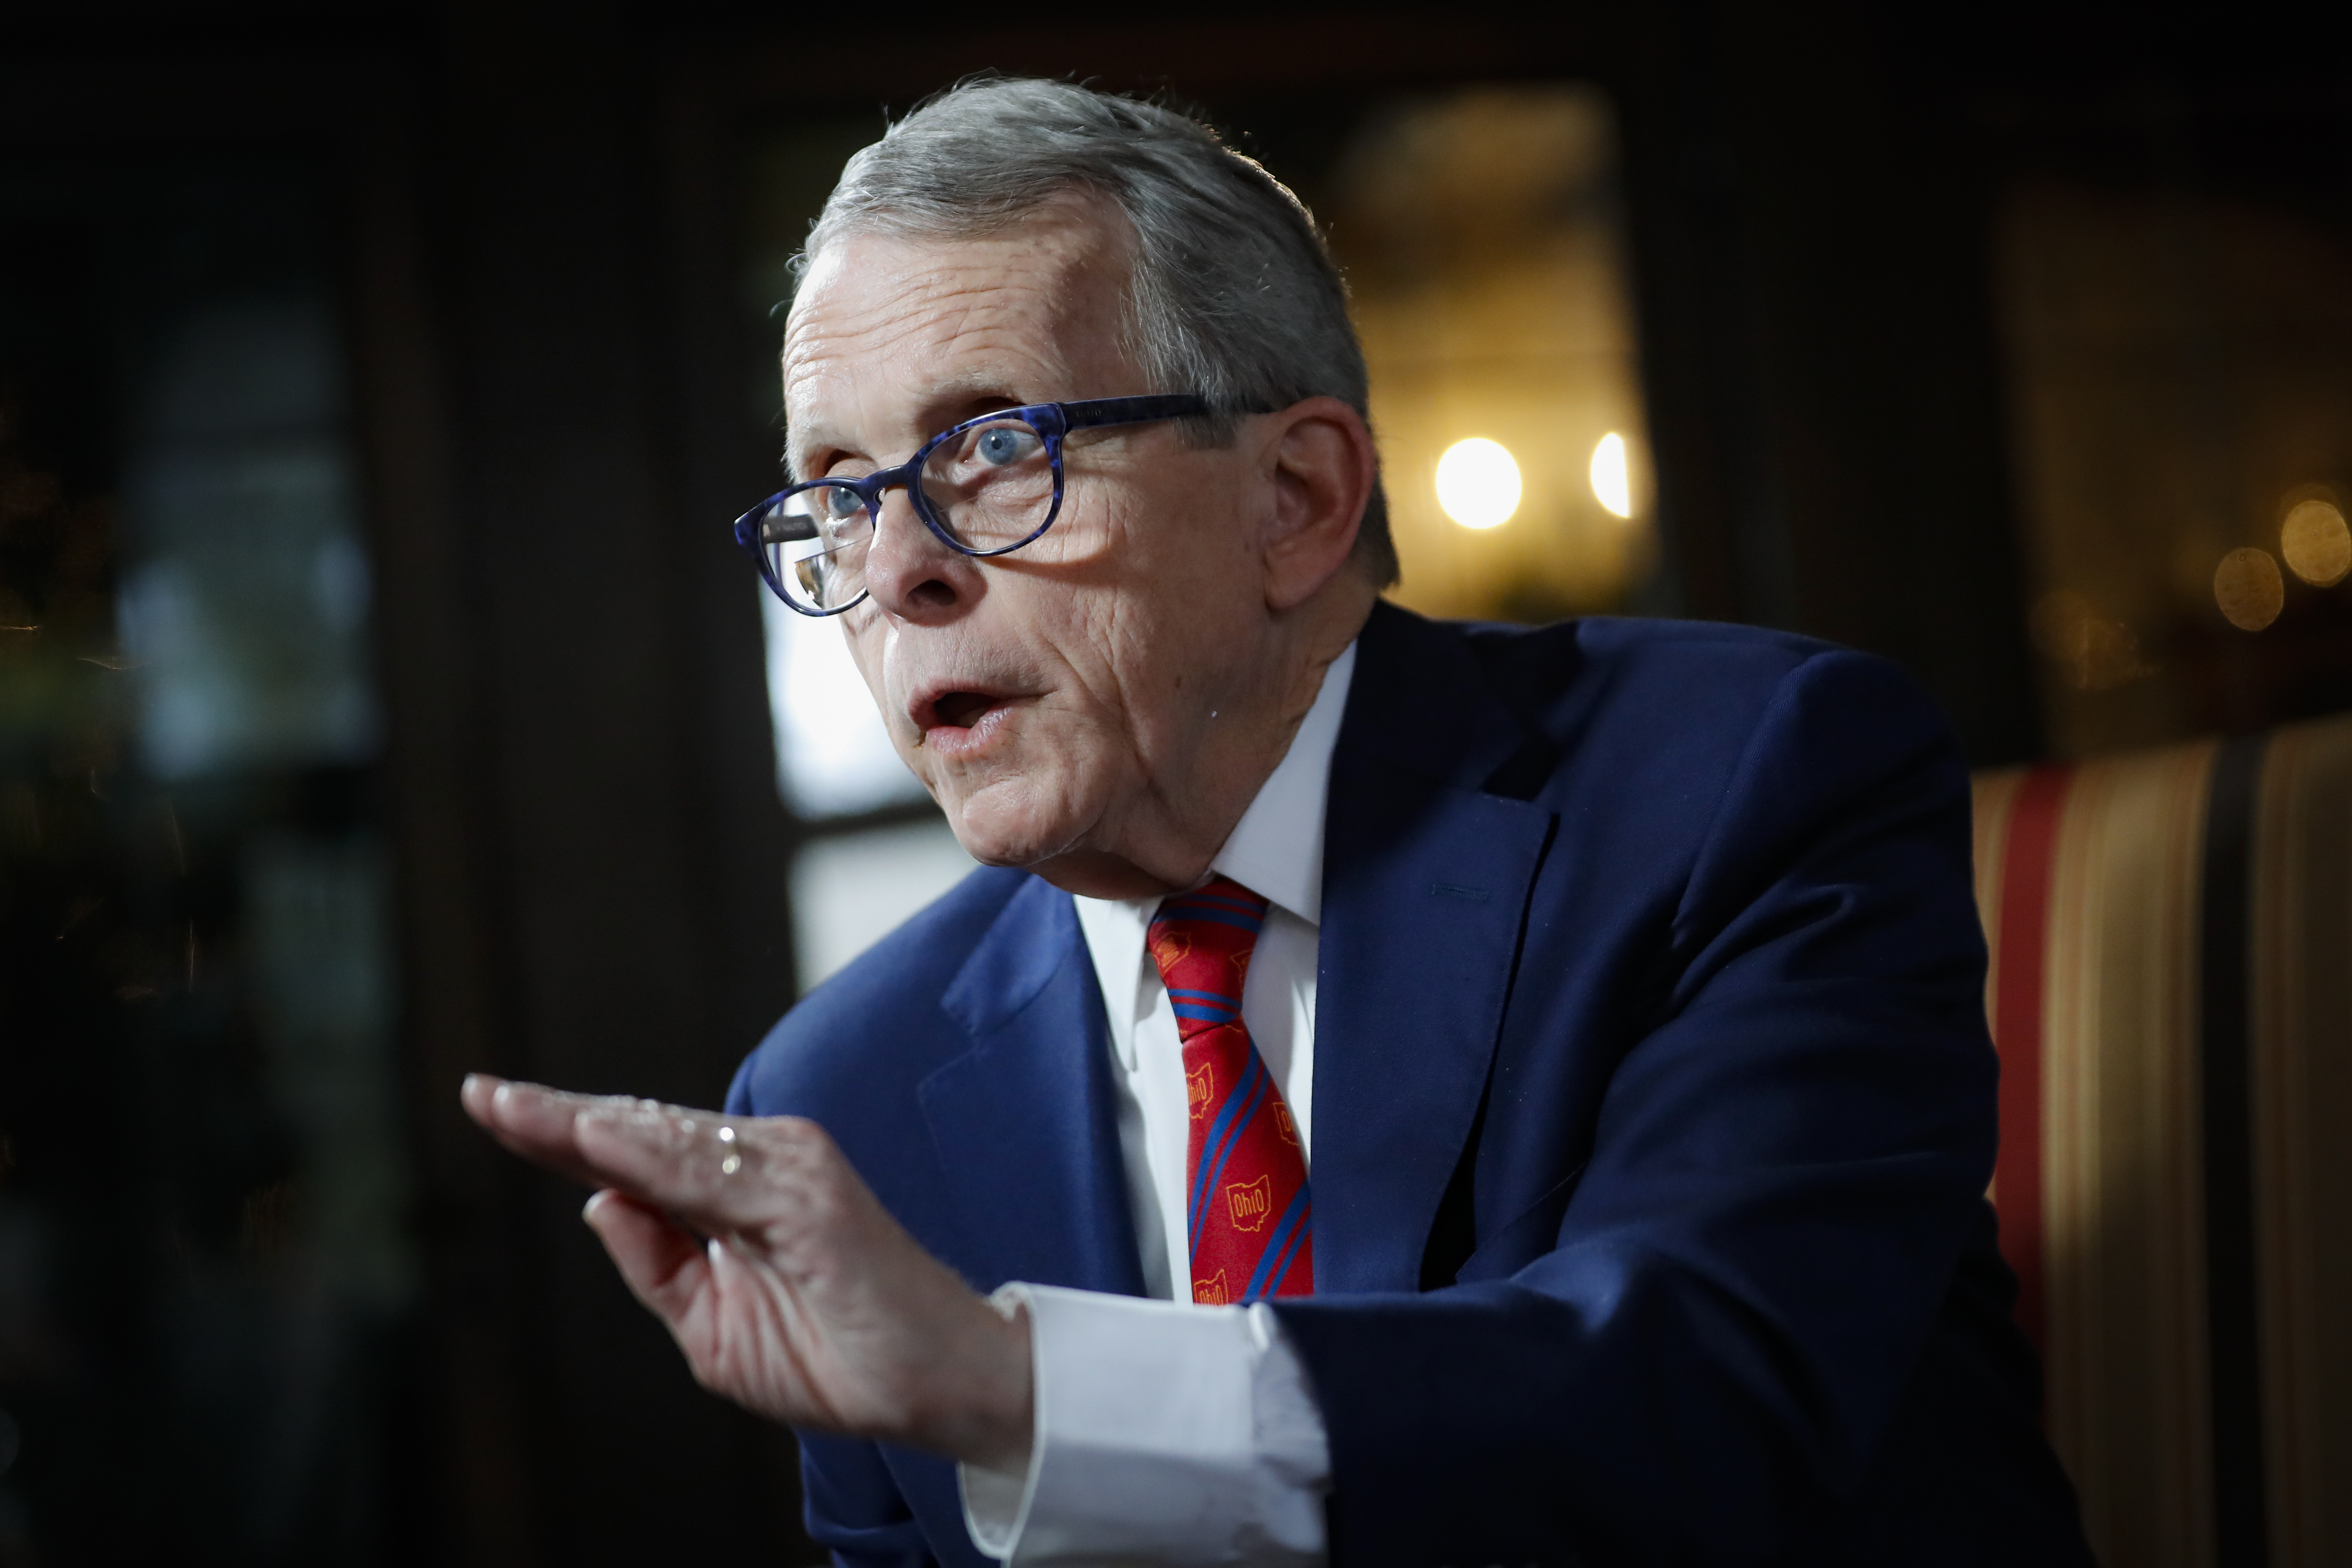 In this Dec. 13, 2019, file photo, Ohio Gov. Mike DeWine speaks about his plans for the coming year during an interview at the Governor's Residence in Columbus, Ohio.